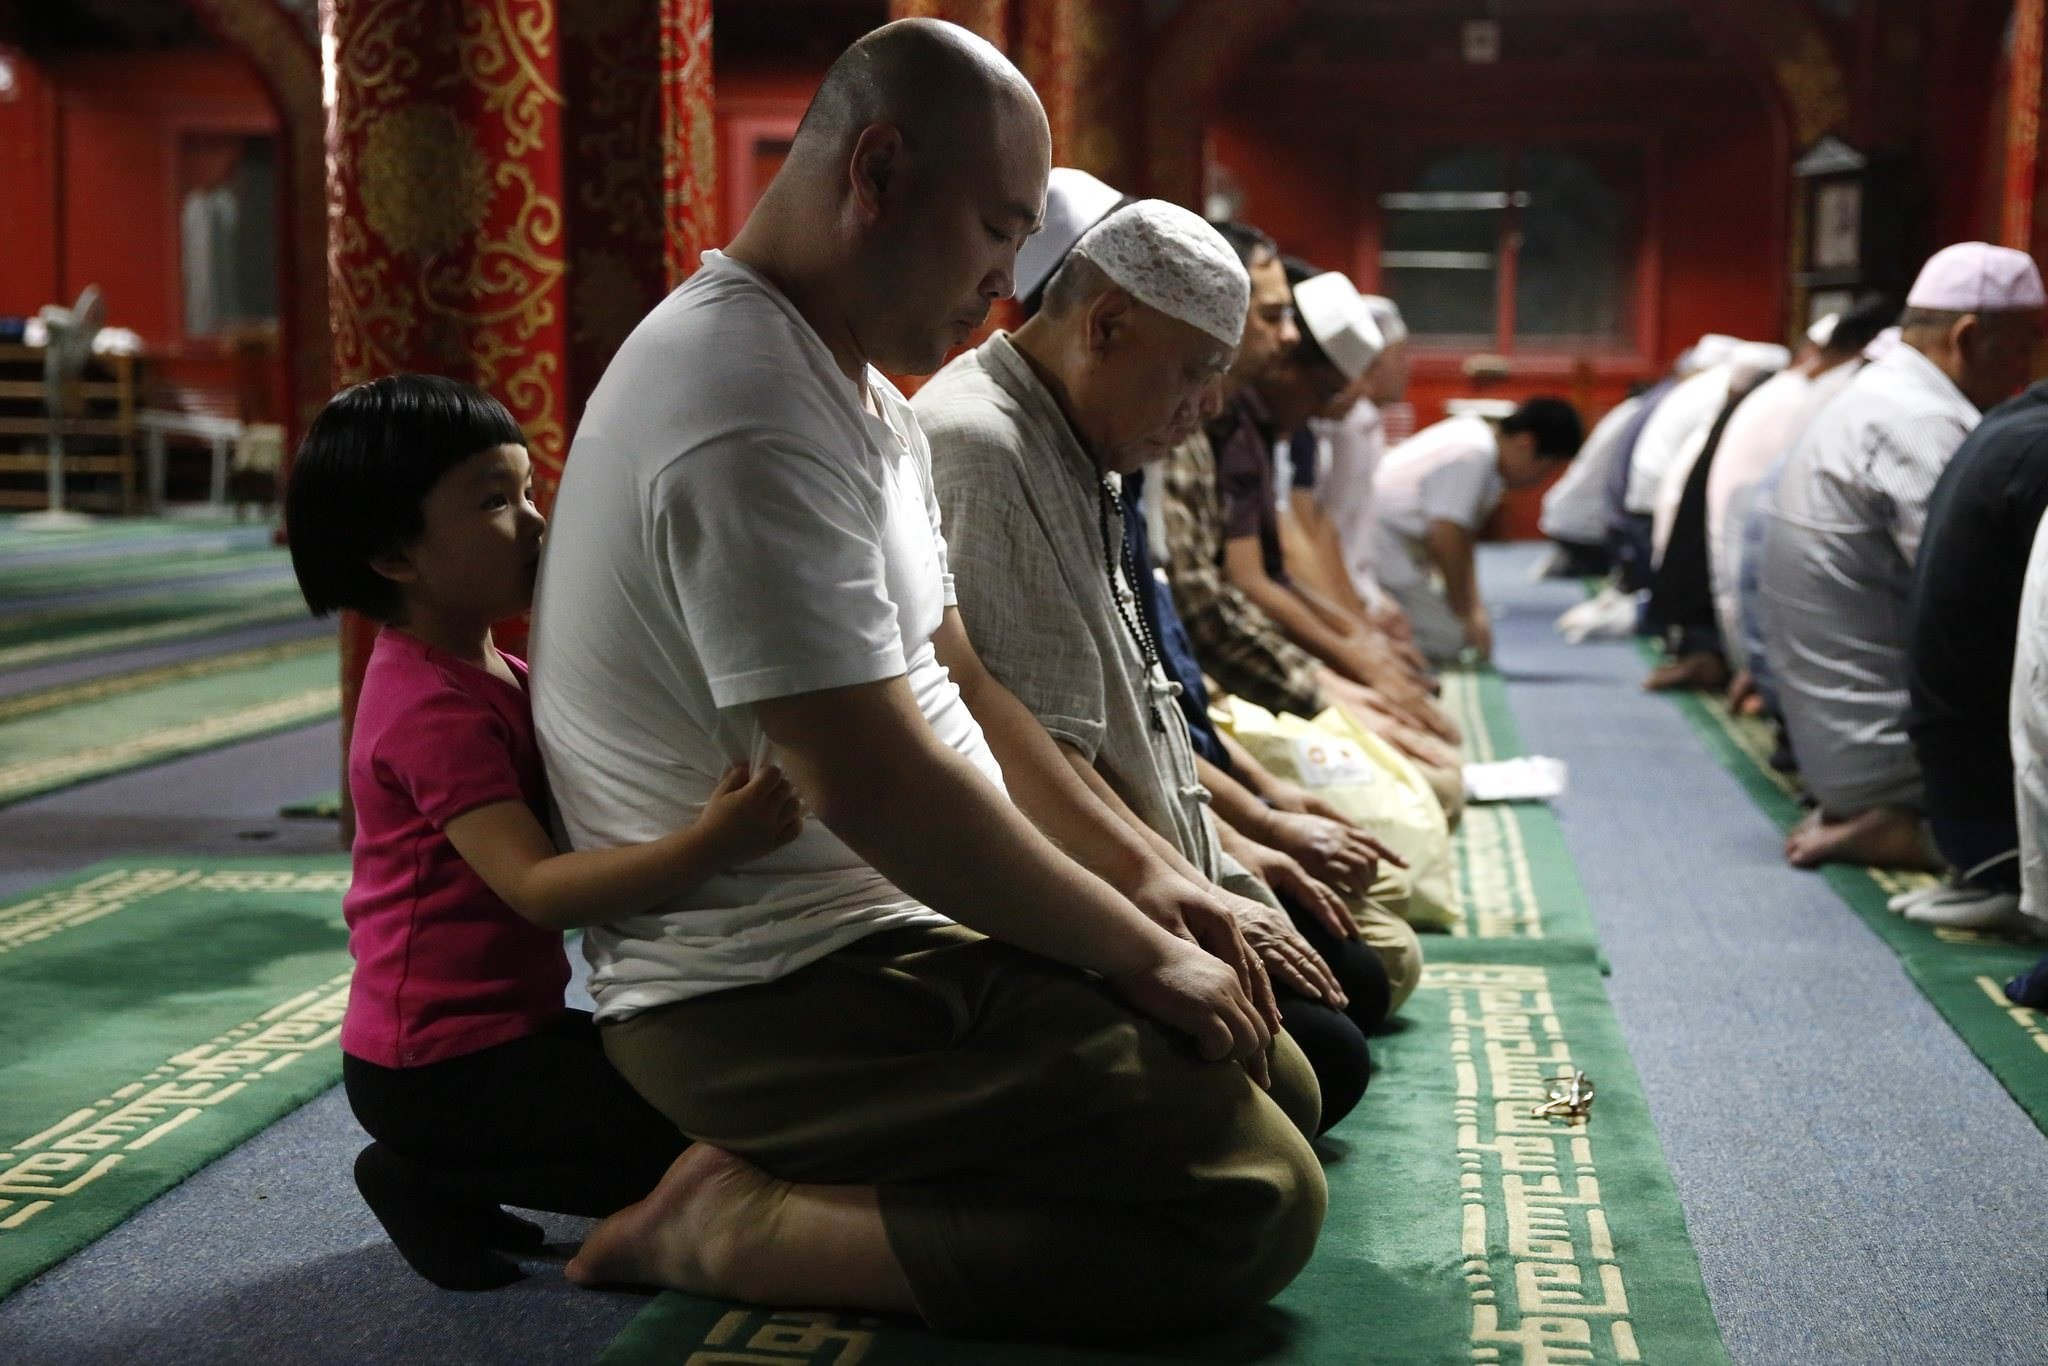 A little girl embraces a Muslim man from behind as he prays with other devotees during the evening ramadan prayers on the first day of the fasting month of Ramadan at the Niujie mosque in Beijing, China, 18 june 2015. (EPA Photo)